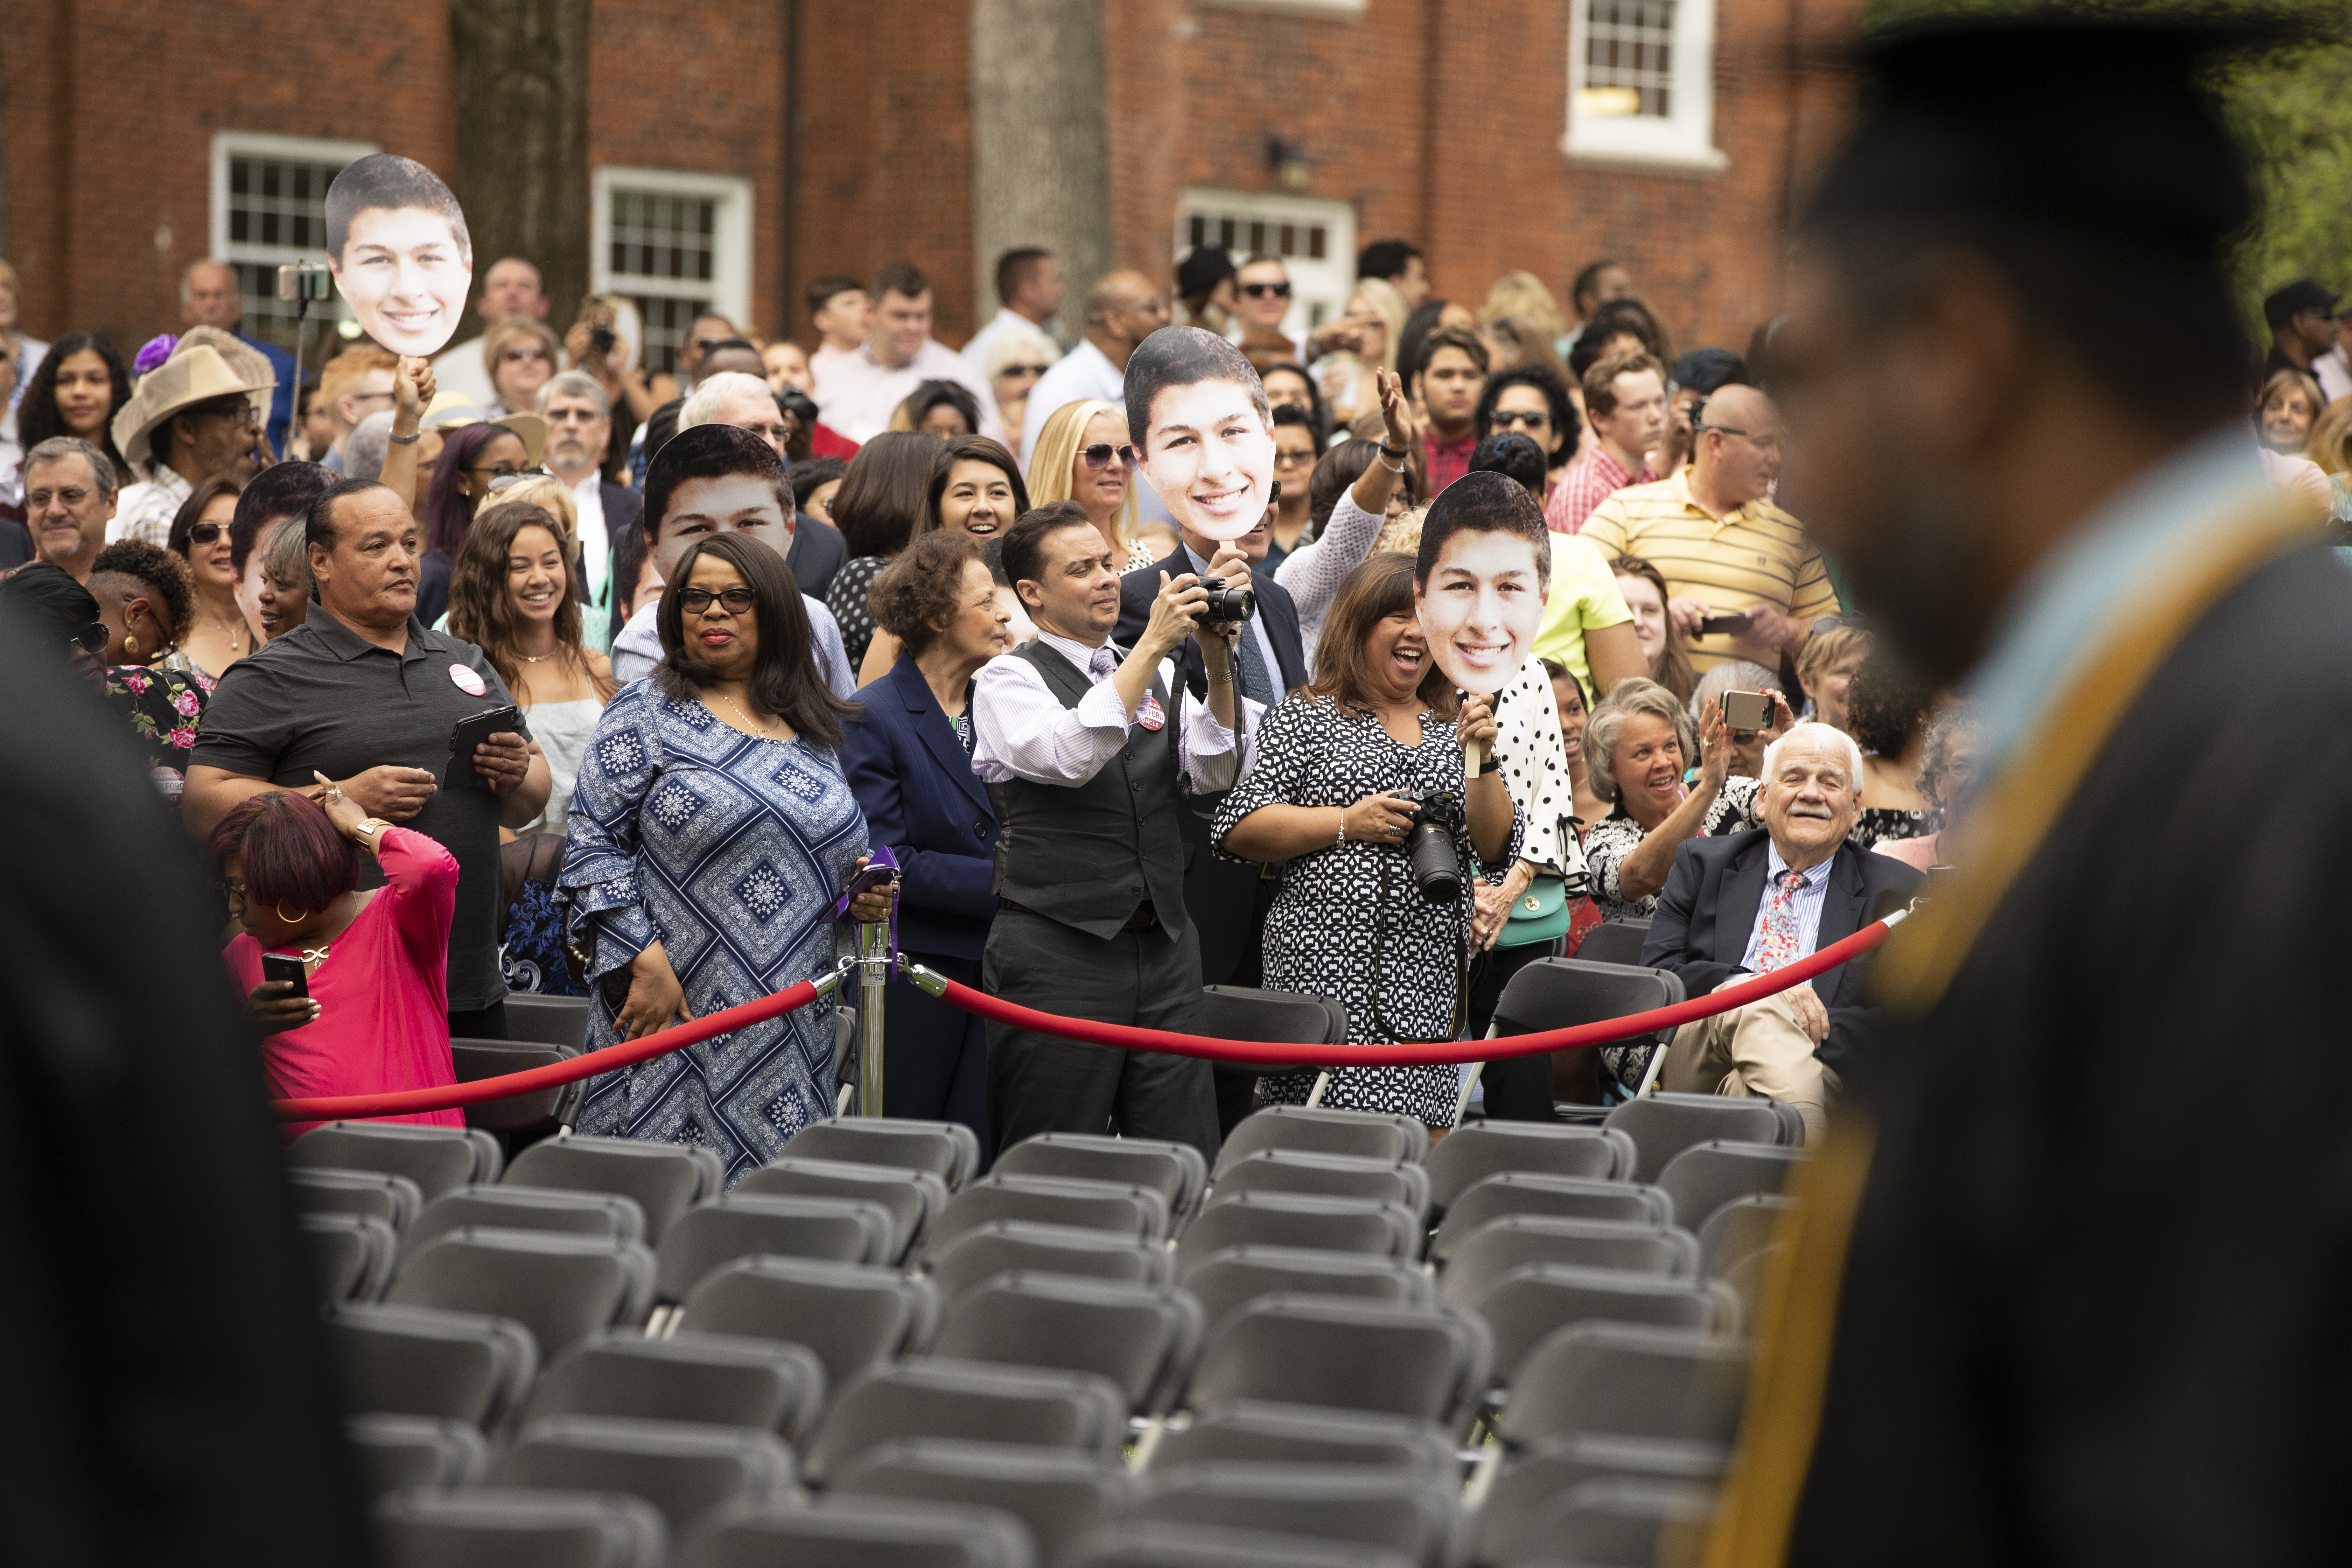 Family and friends cheer on their graduates as students are welcomed to Commencement.